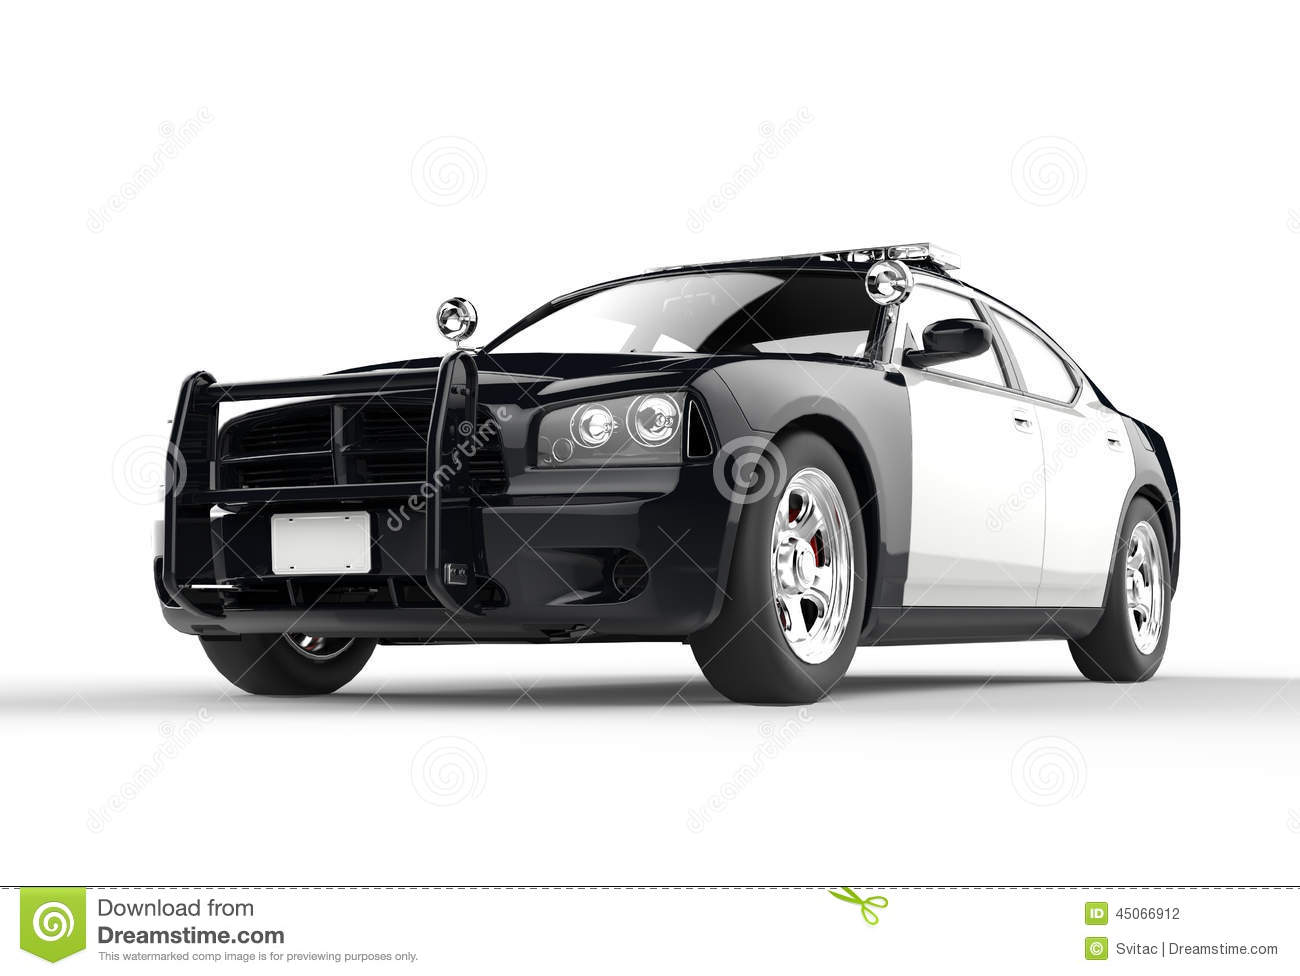 Car decals and graphics design - Police Car Without Decals On White Background Image Shot In Ultra